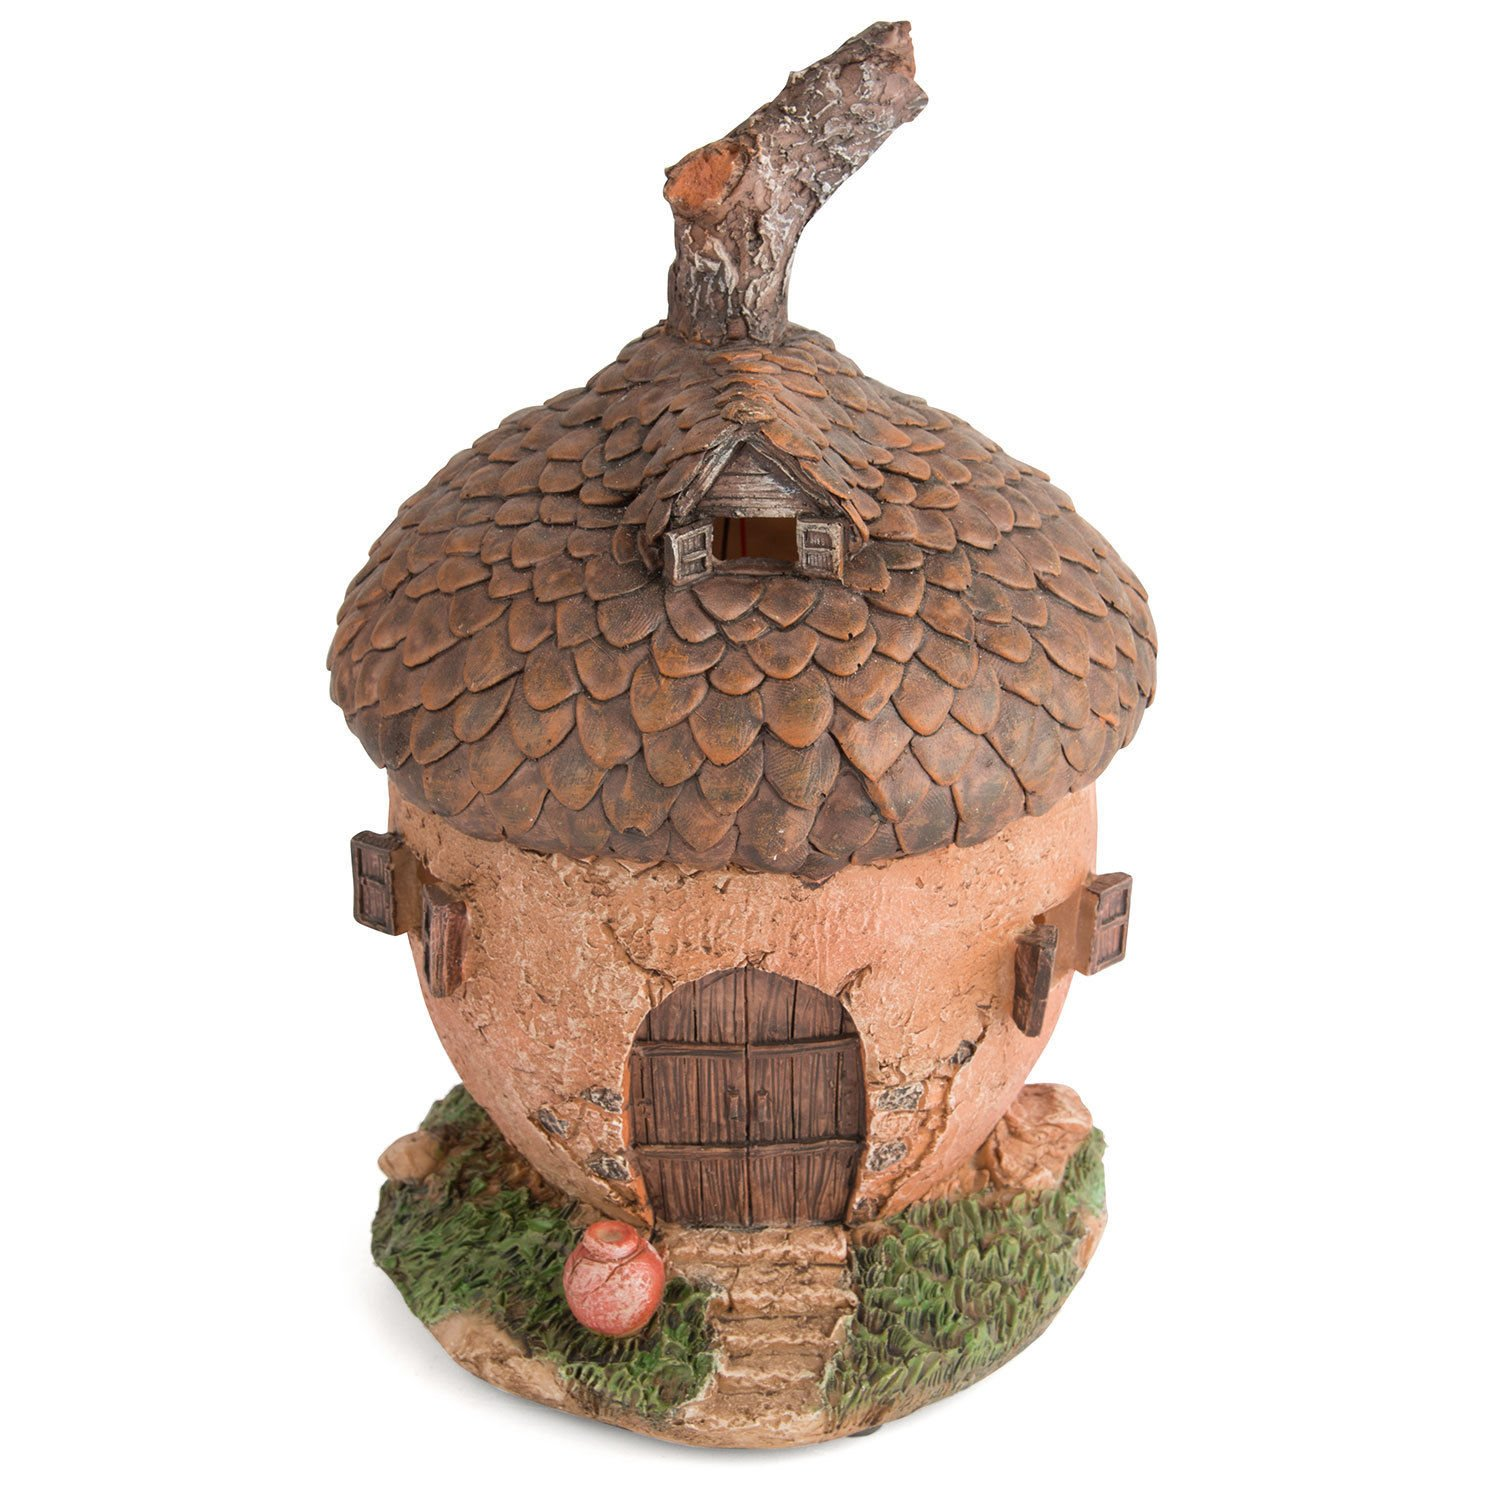 Garden Glows Solar Powered LED Fairy House Light Acorn Ornament Whisper Rose by Garden Glows